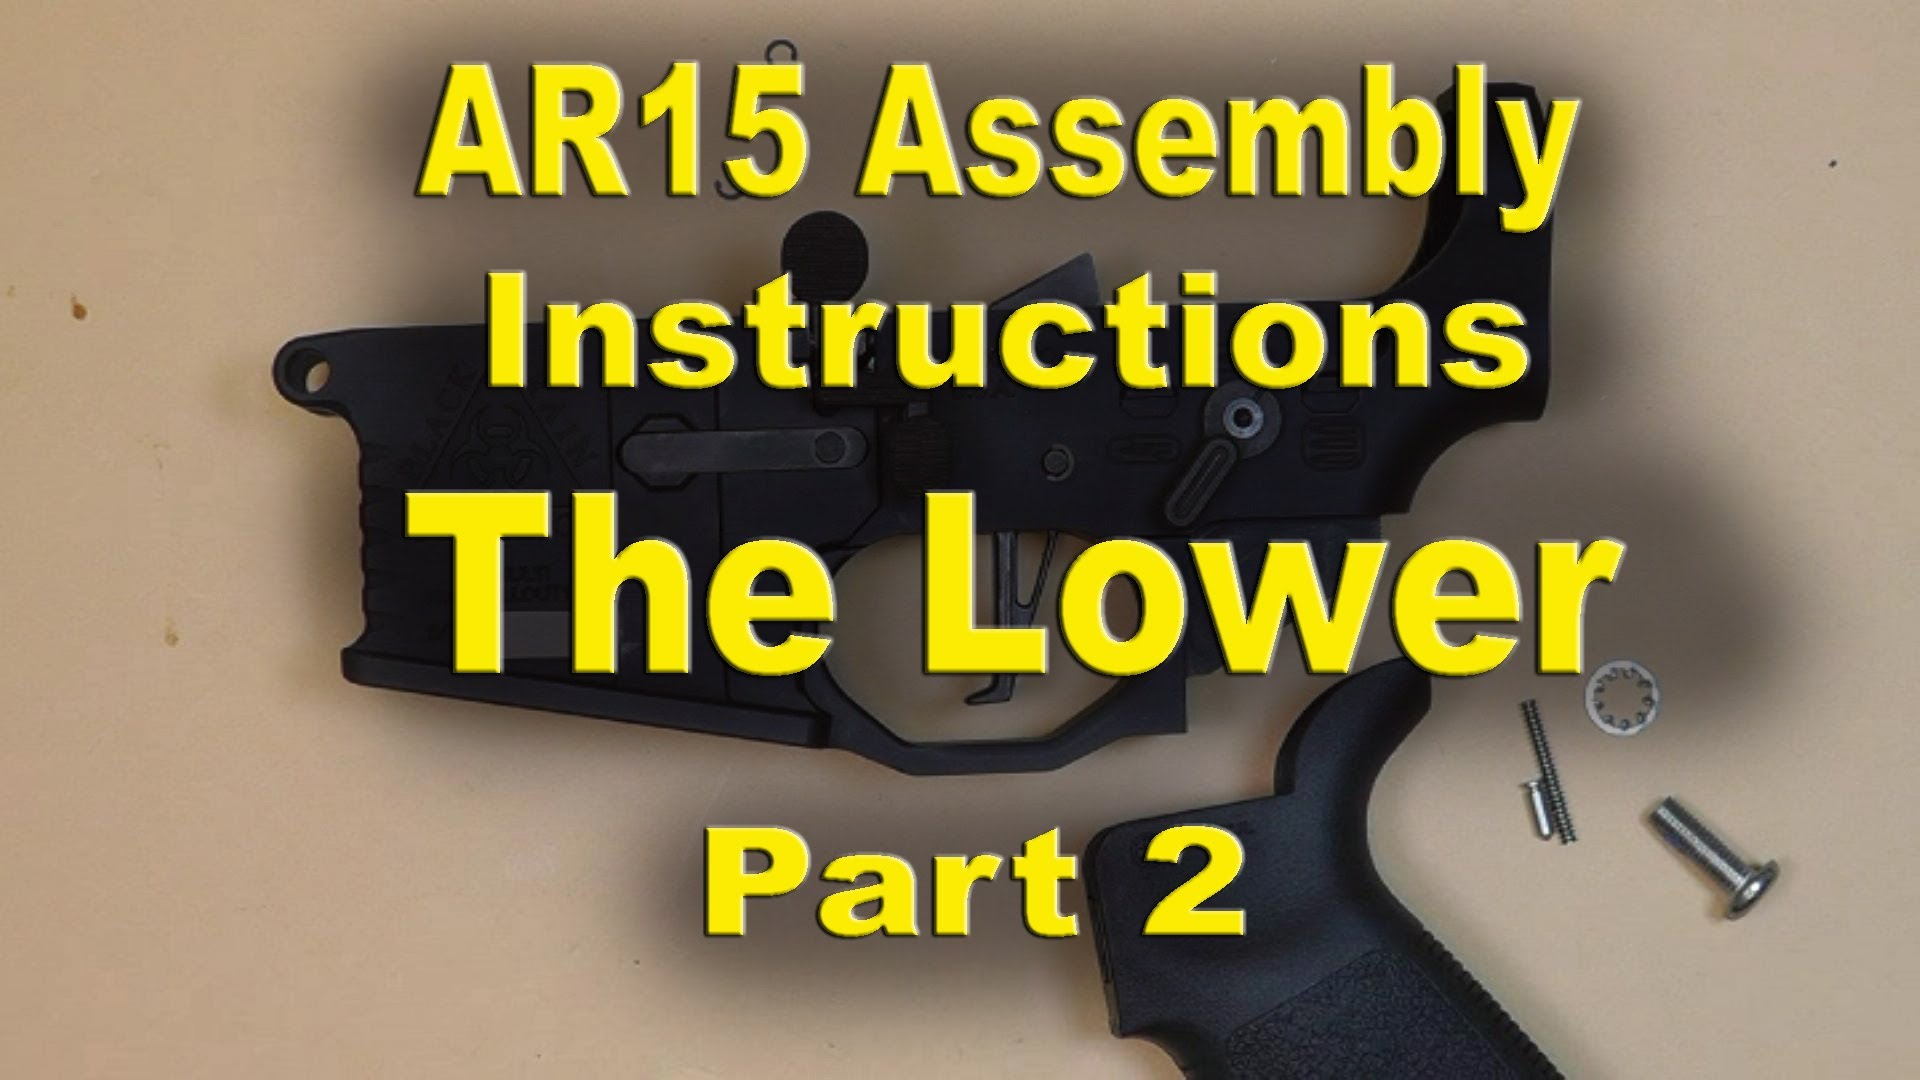 Black Rain Ordnance AR15 Assembly Instructions PART 2 (The Lower)